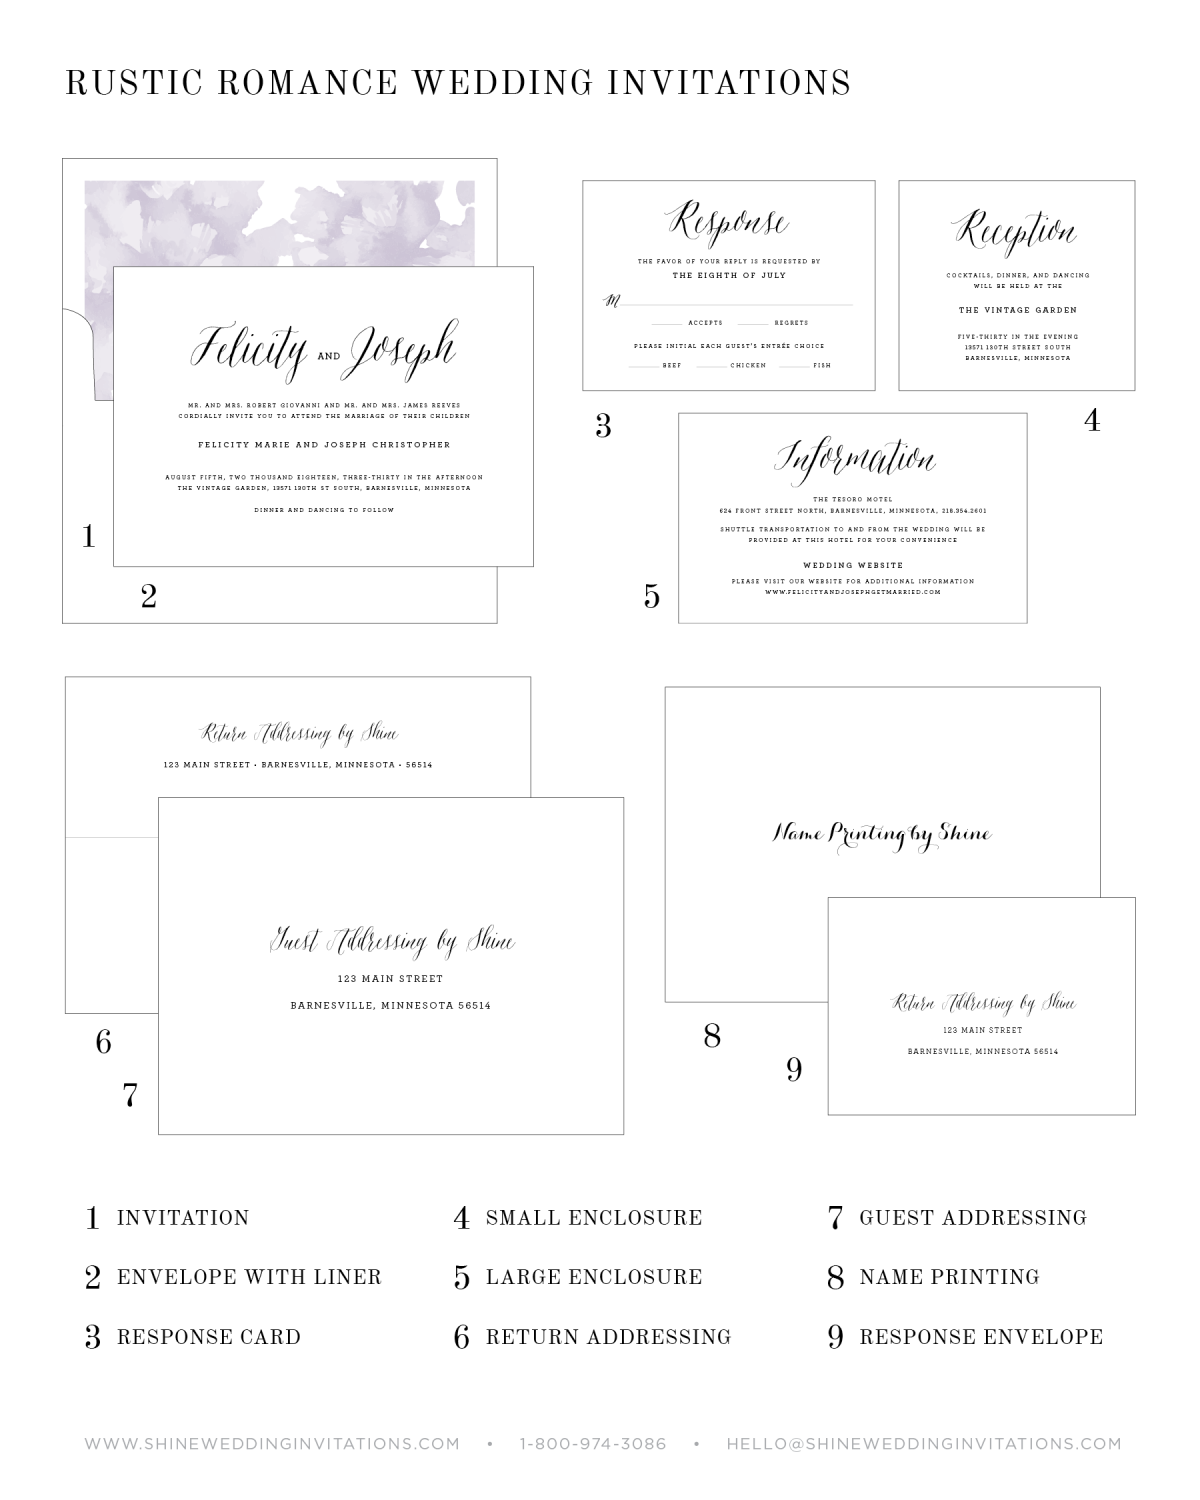 Wedding Inviations Components